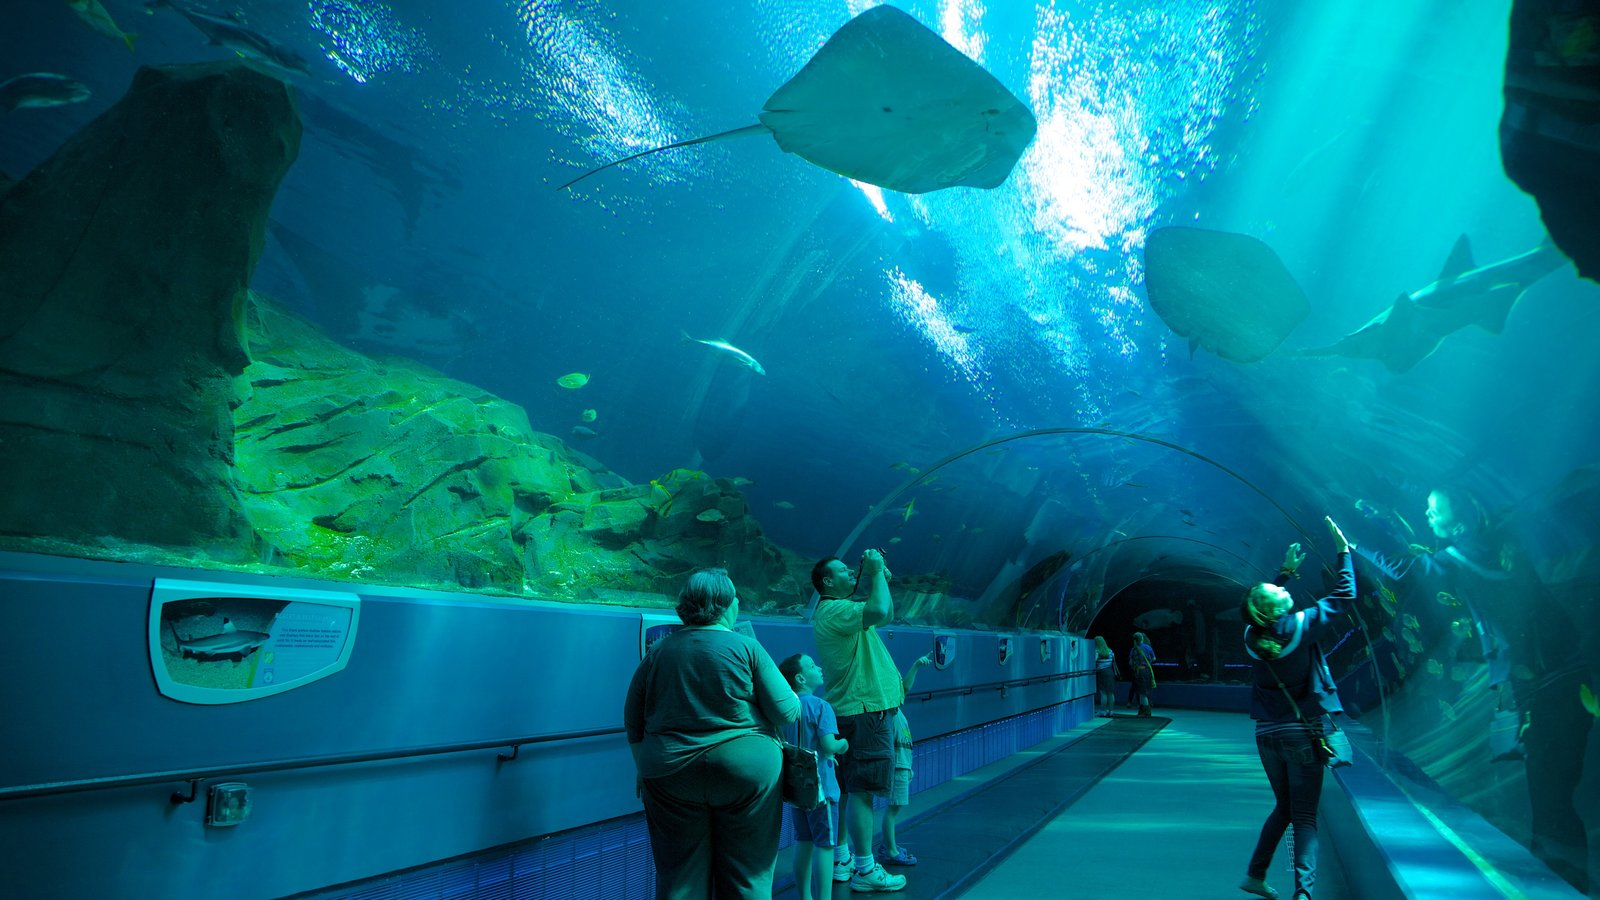 Atlanta featuring marine life and interior views as well as a family